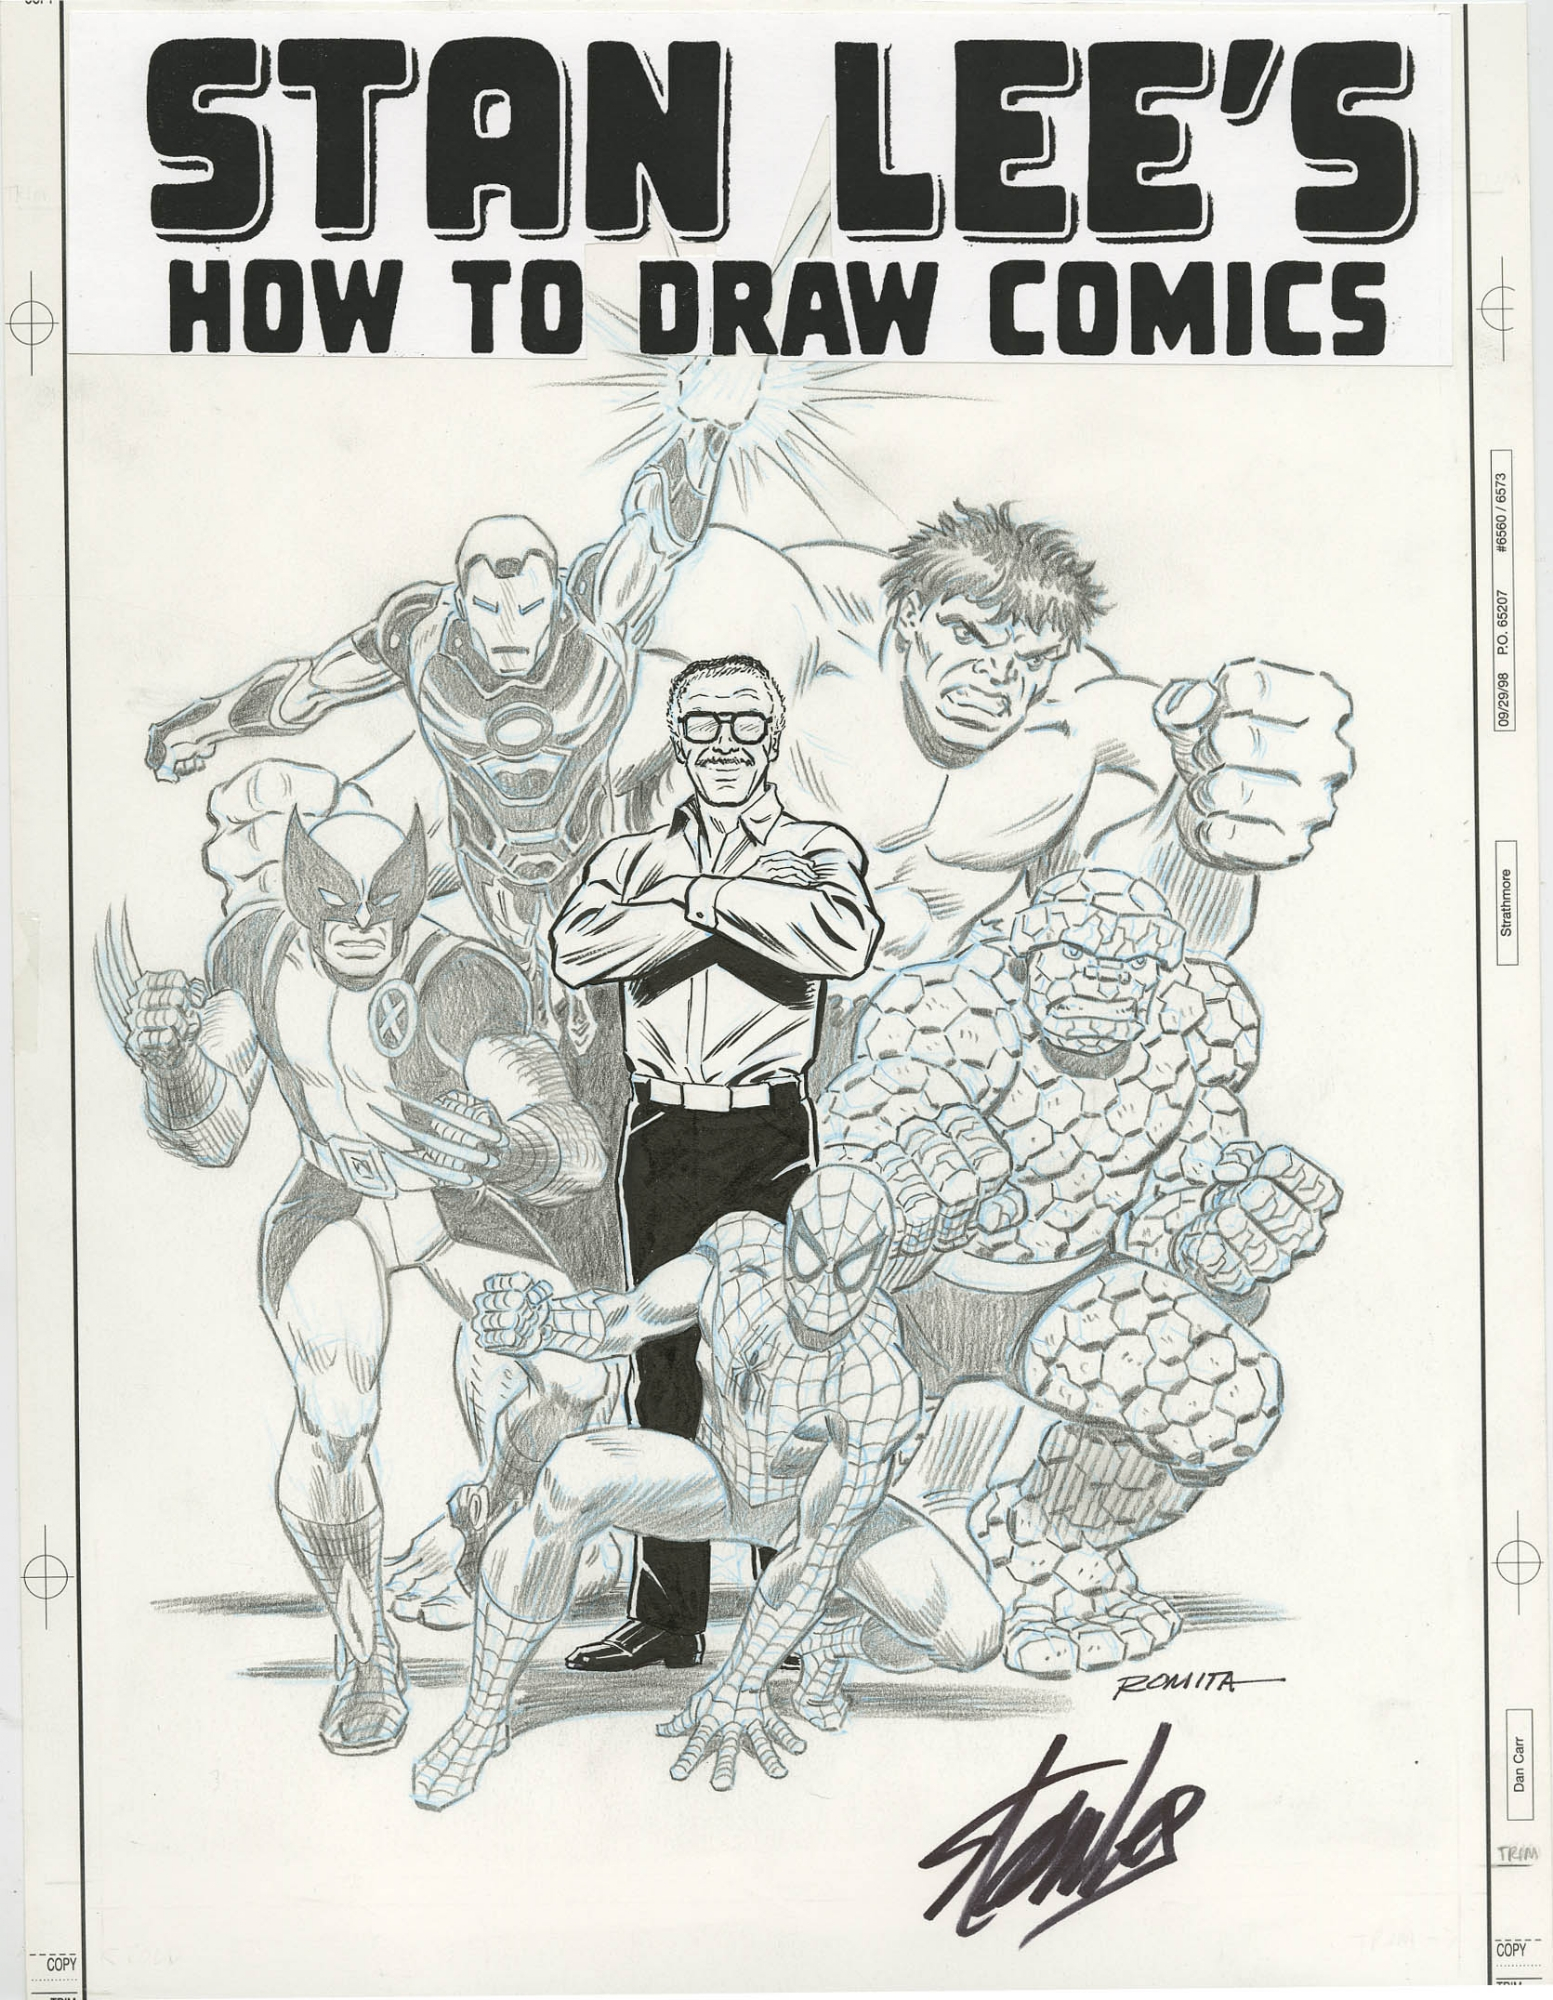 Stan Lee S How To Draw Comics Cover 2010 John Romita Marvel S Greatest Characters Including Stan Lee In Original Art Auctions And Exchange Comiclink Com S Closed Featured Auction Highlights 8 2018 Comic Art Gallery Room